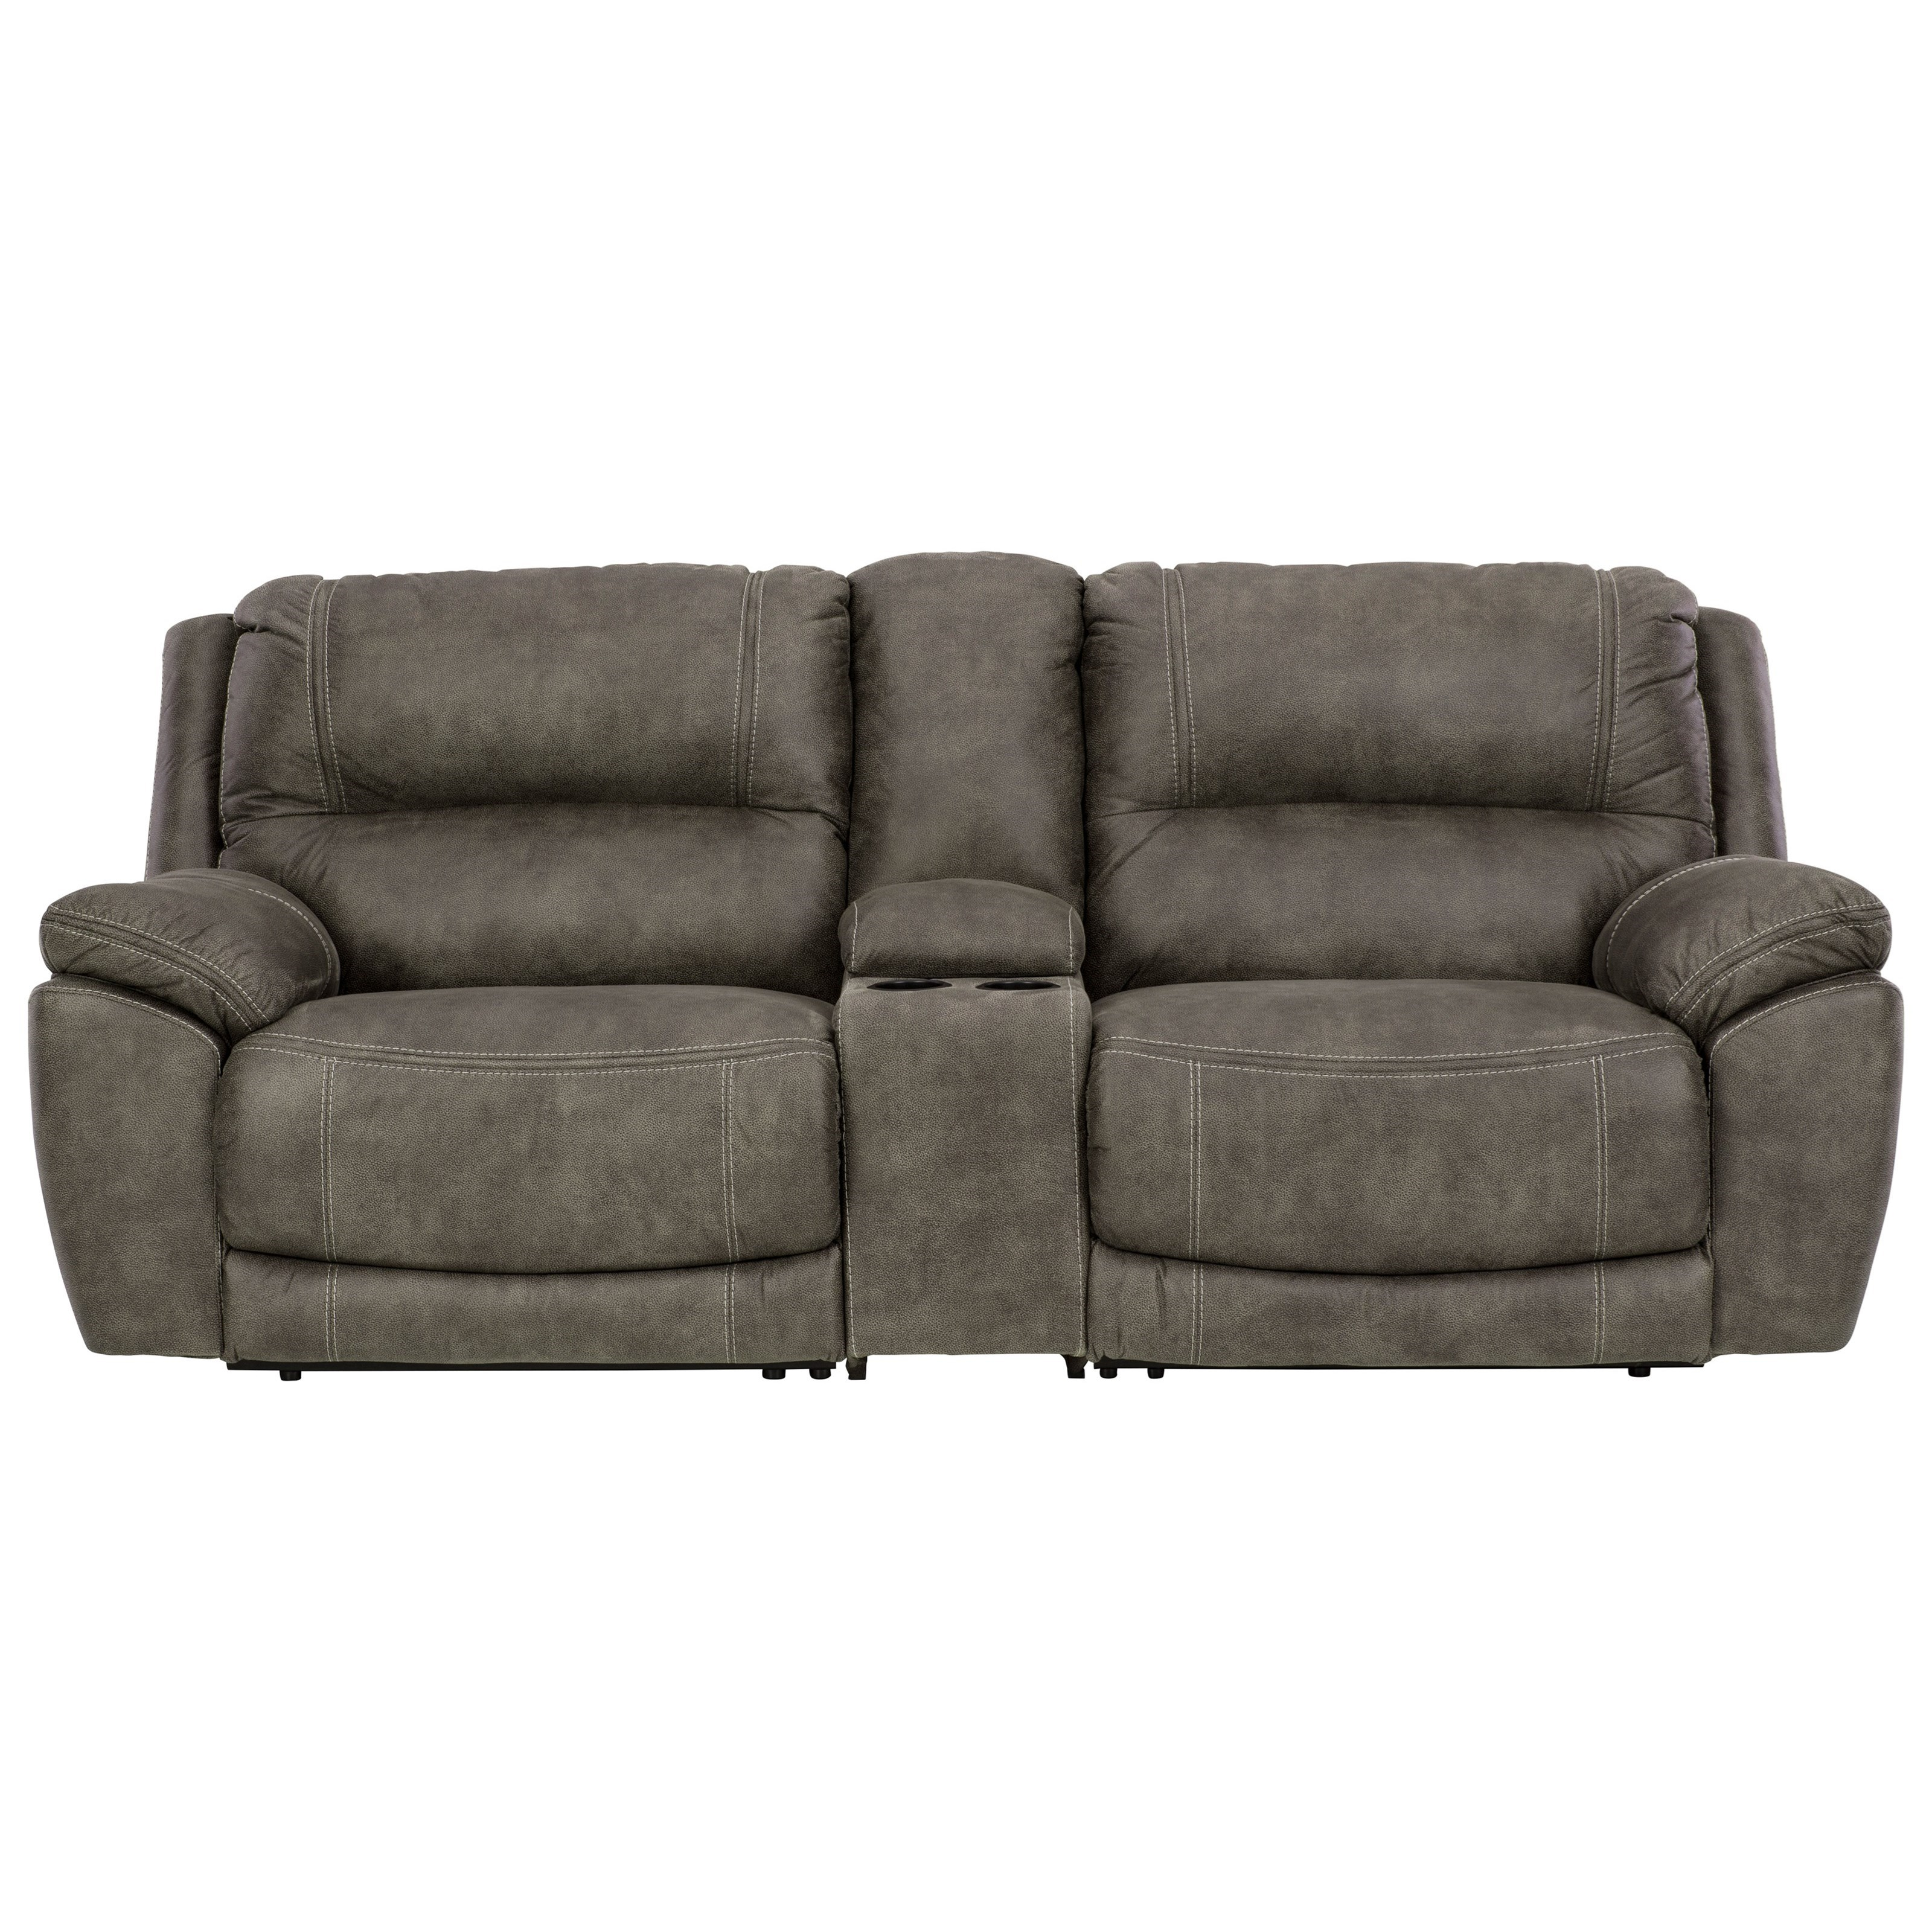 Cranedall Power Reclining Loveseat w/ Console by Ashley (Signature Design) at Johnny Janosik